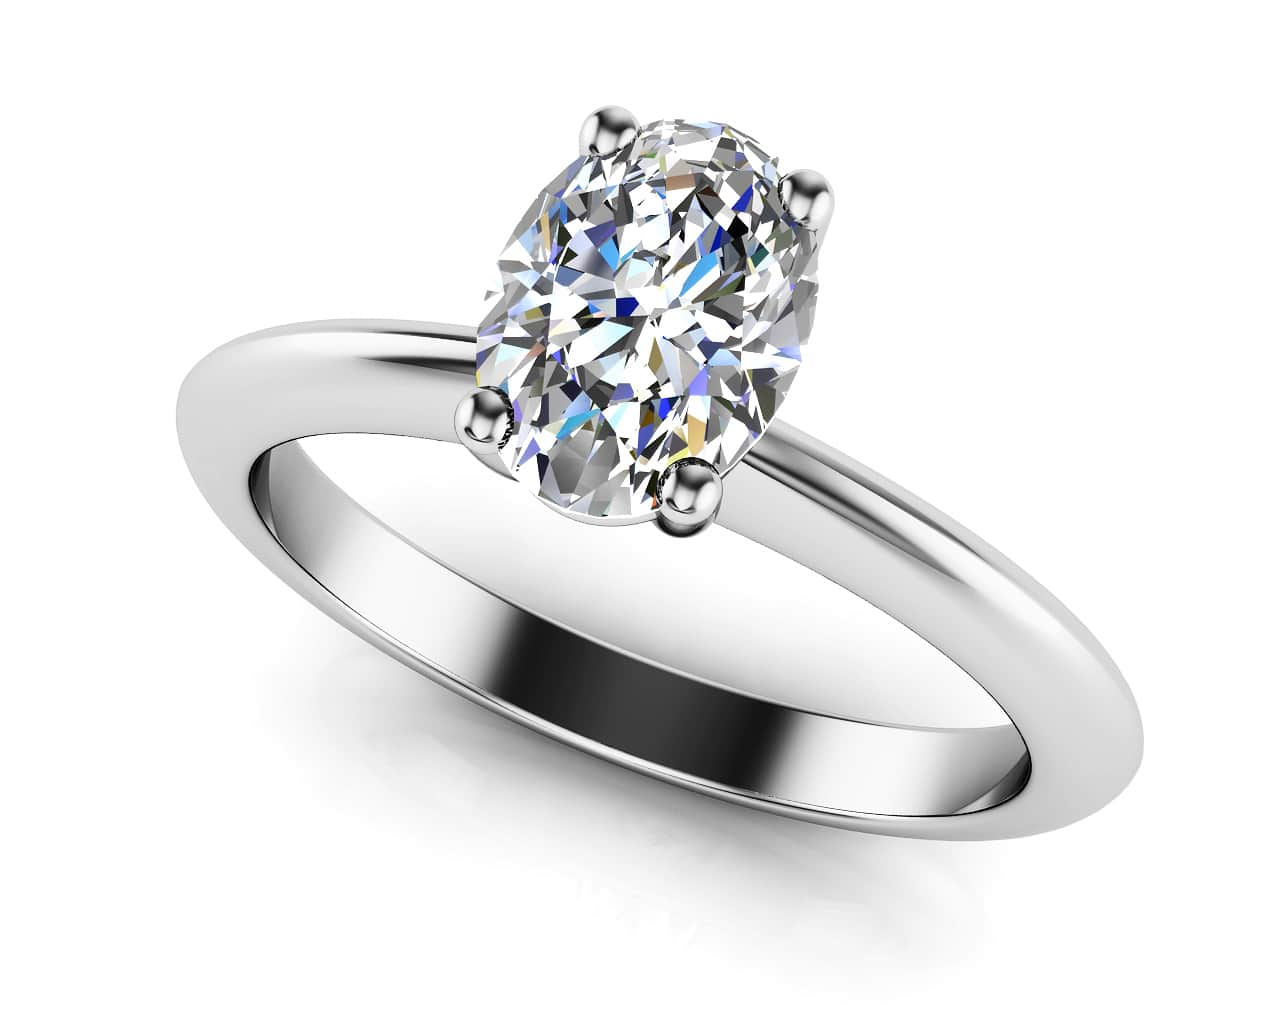 Love With No Limits Oval Solitaire Diamond Ring 5/8 Carat Total Weight